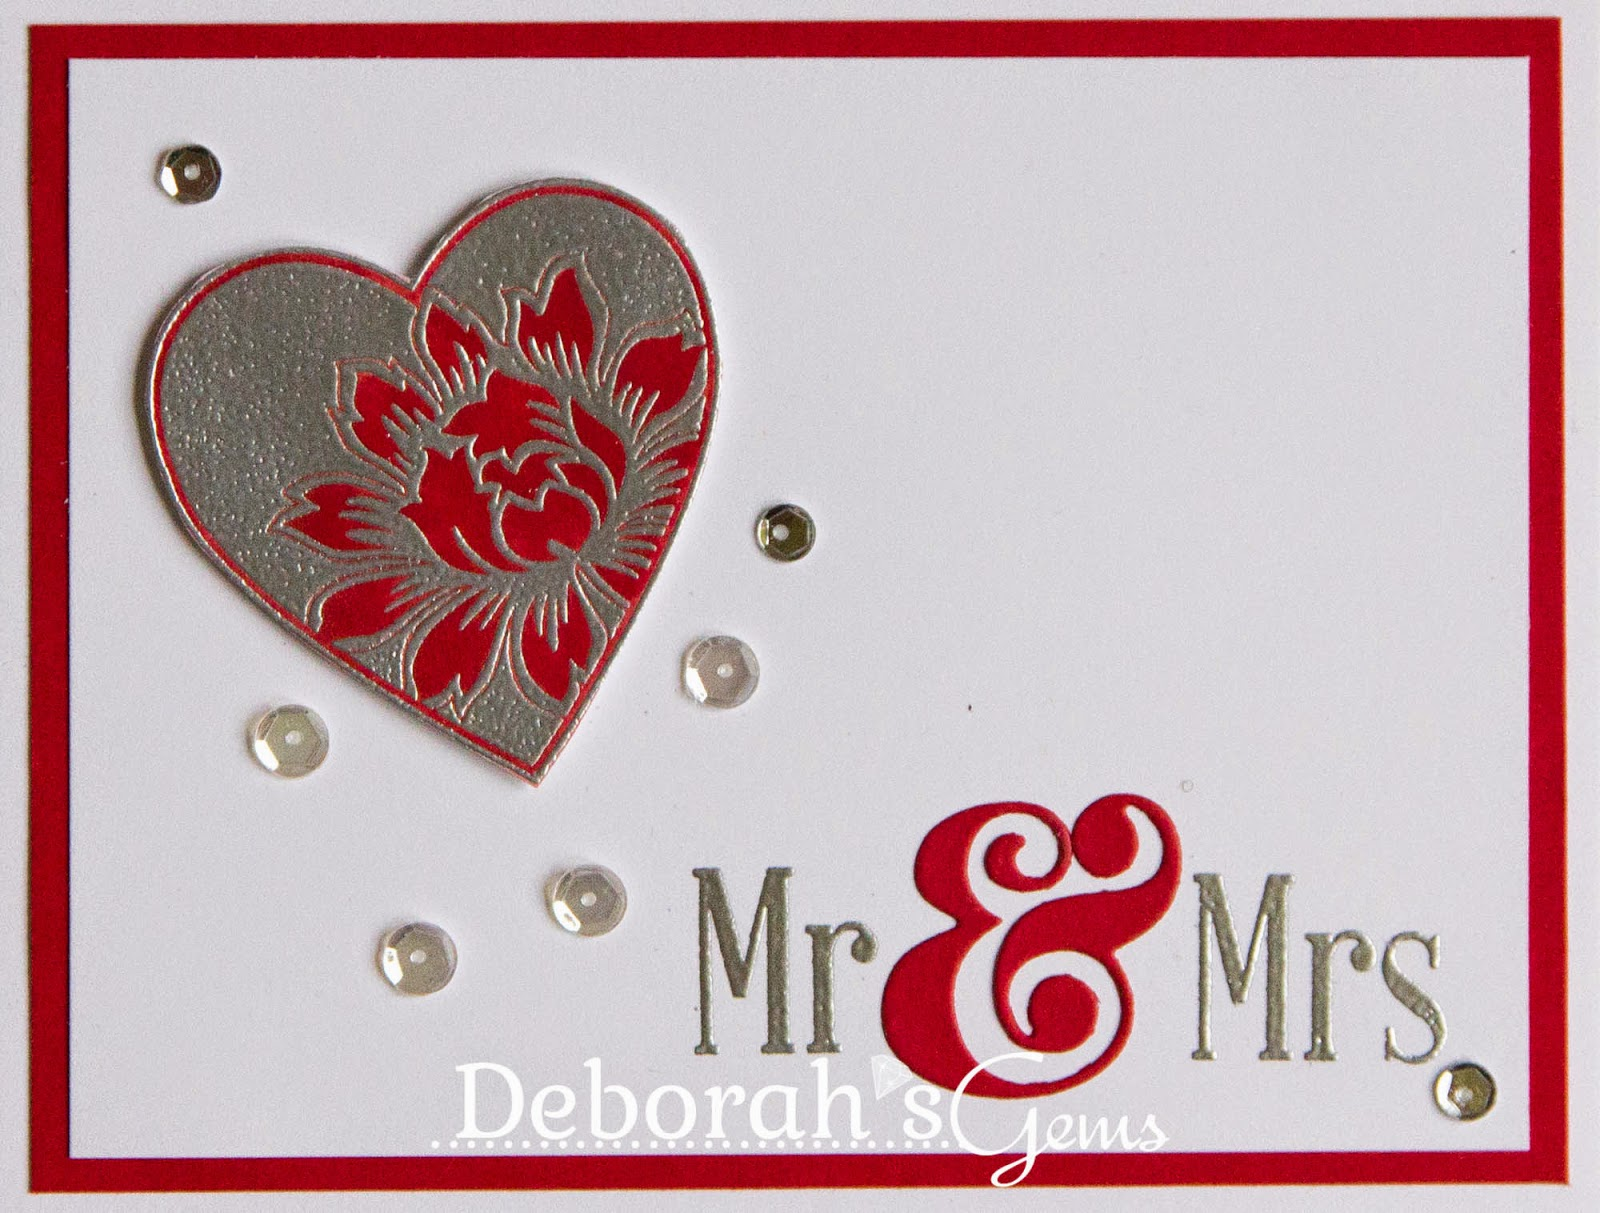 Mr & Mrs - photo by Deborah Frings - Deborah's Gems